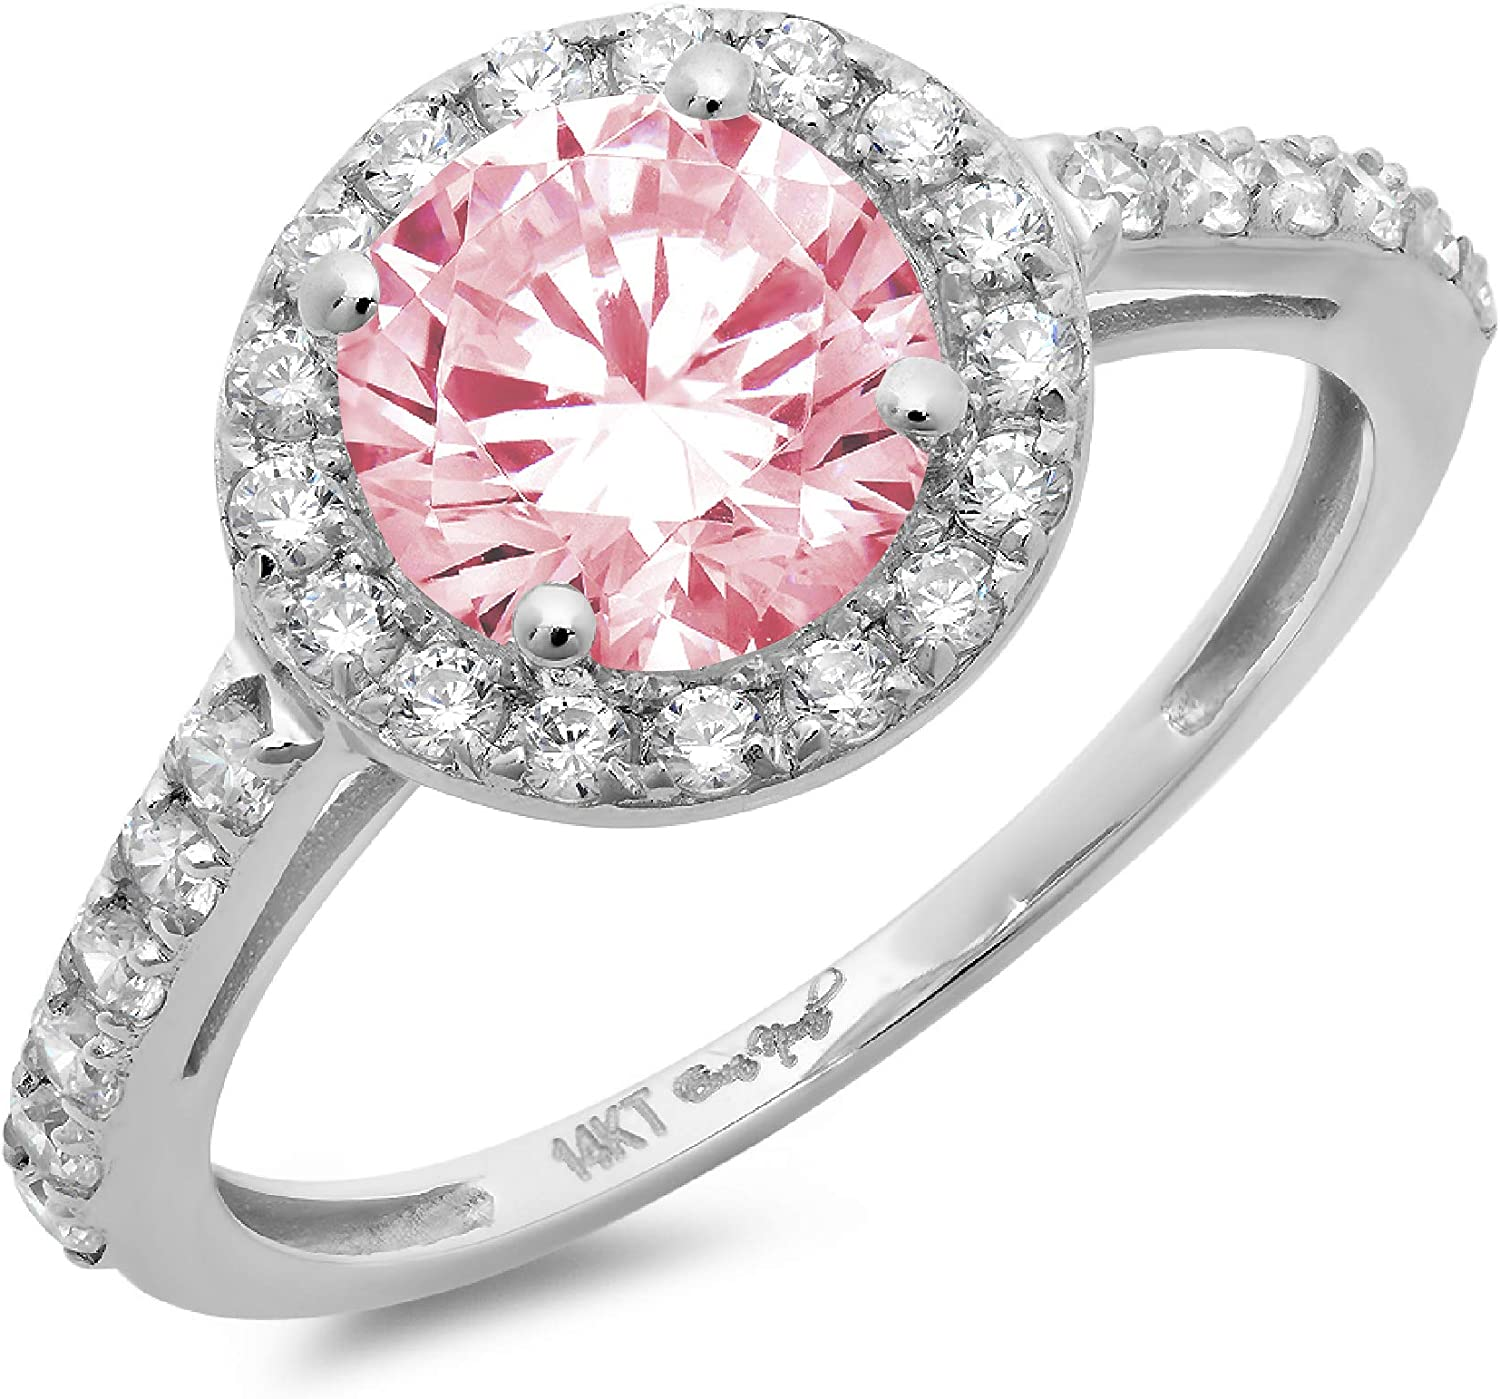 2.34ct Brilliant Round Cut Solitaire Halo Pink Ideal VVS1 Simulated Diamond CZ Engagement Promise Statement Anniversary Bridal Wedding Accent Ring Solid 14k White Gold